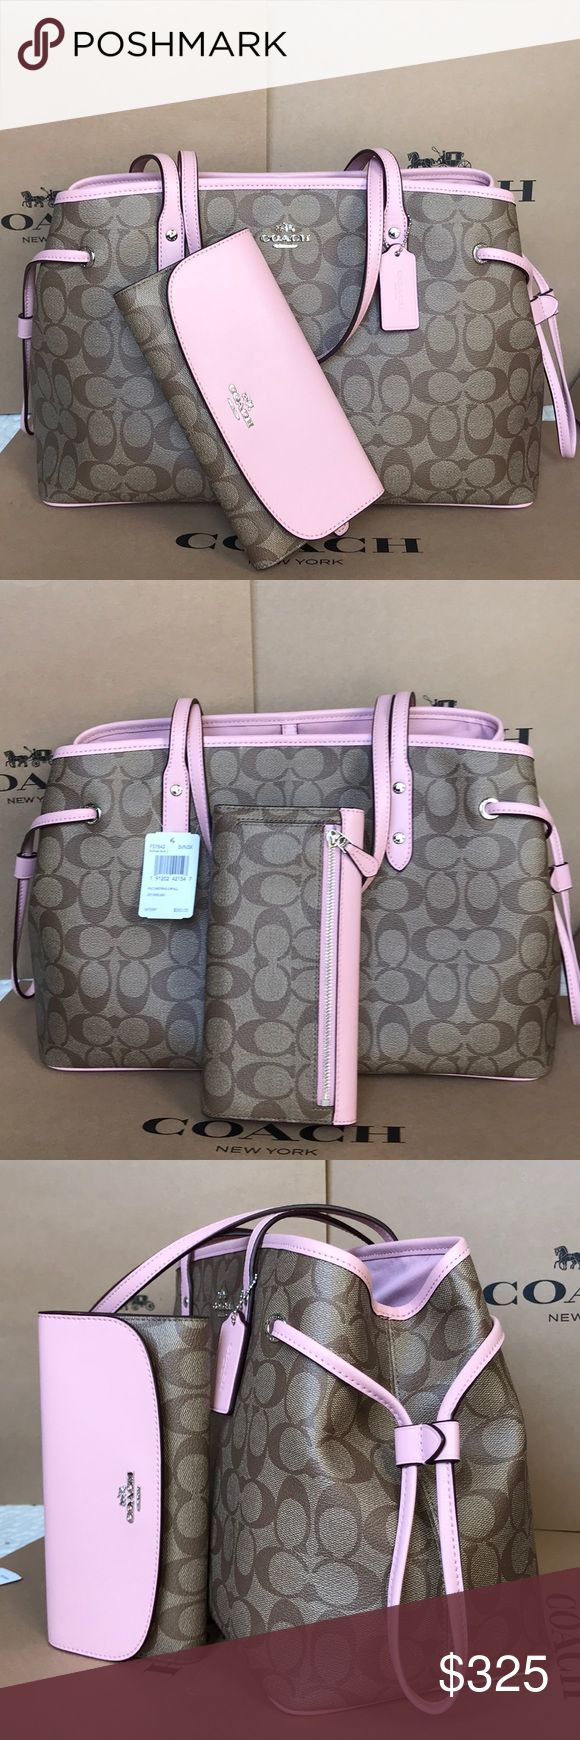 🍀Coach Set🍀 100% Authentic Coach Tote Bag and Checkbook Wallet, brand new with tag!😍😍😍 Coach Bags Totes